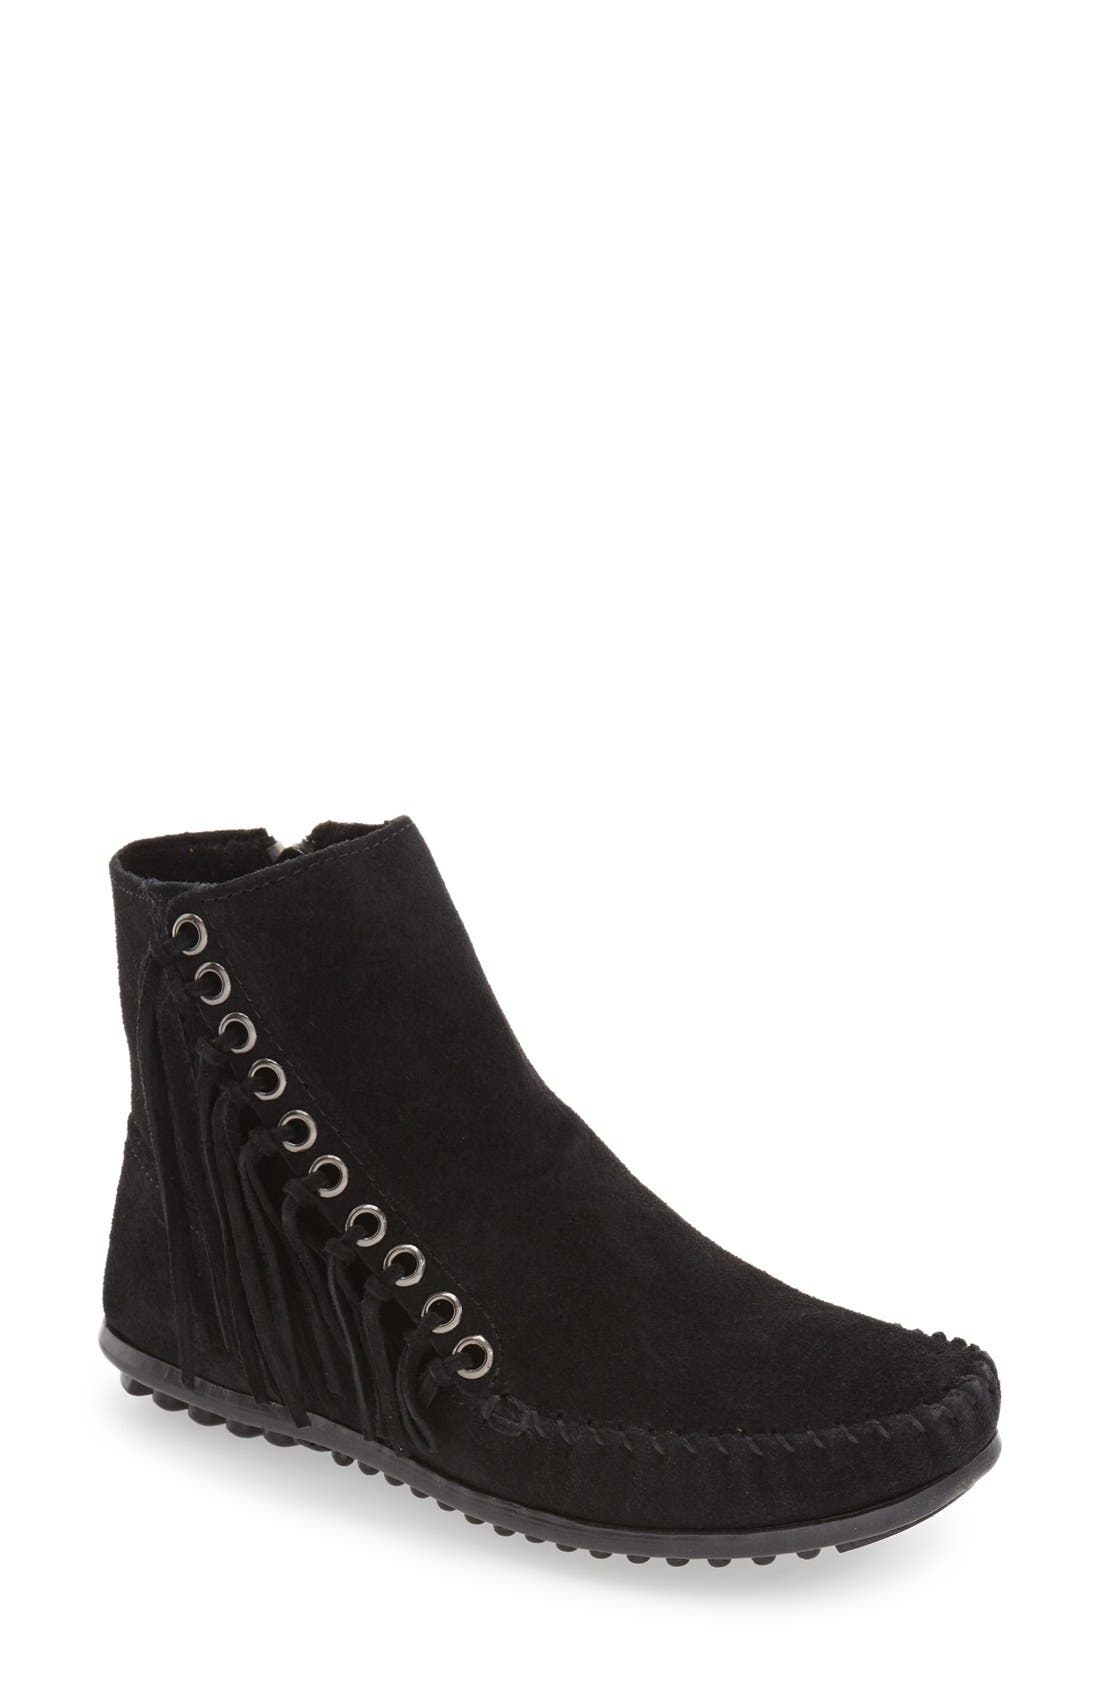 Alternate Image 1 Selected - Minnetonka 'Willow' Fringe Bootie (Women)